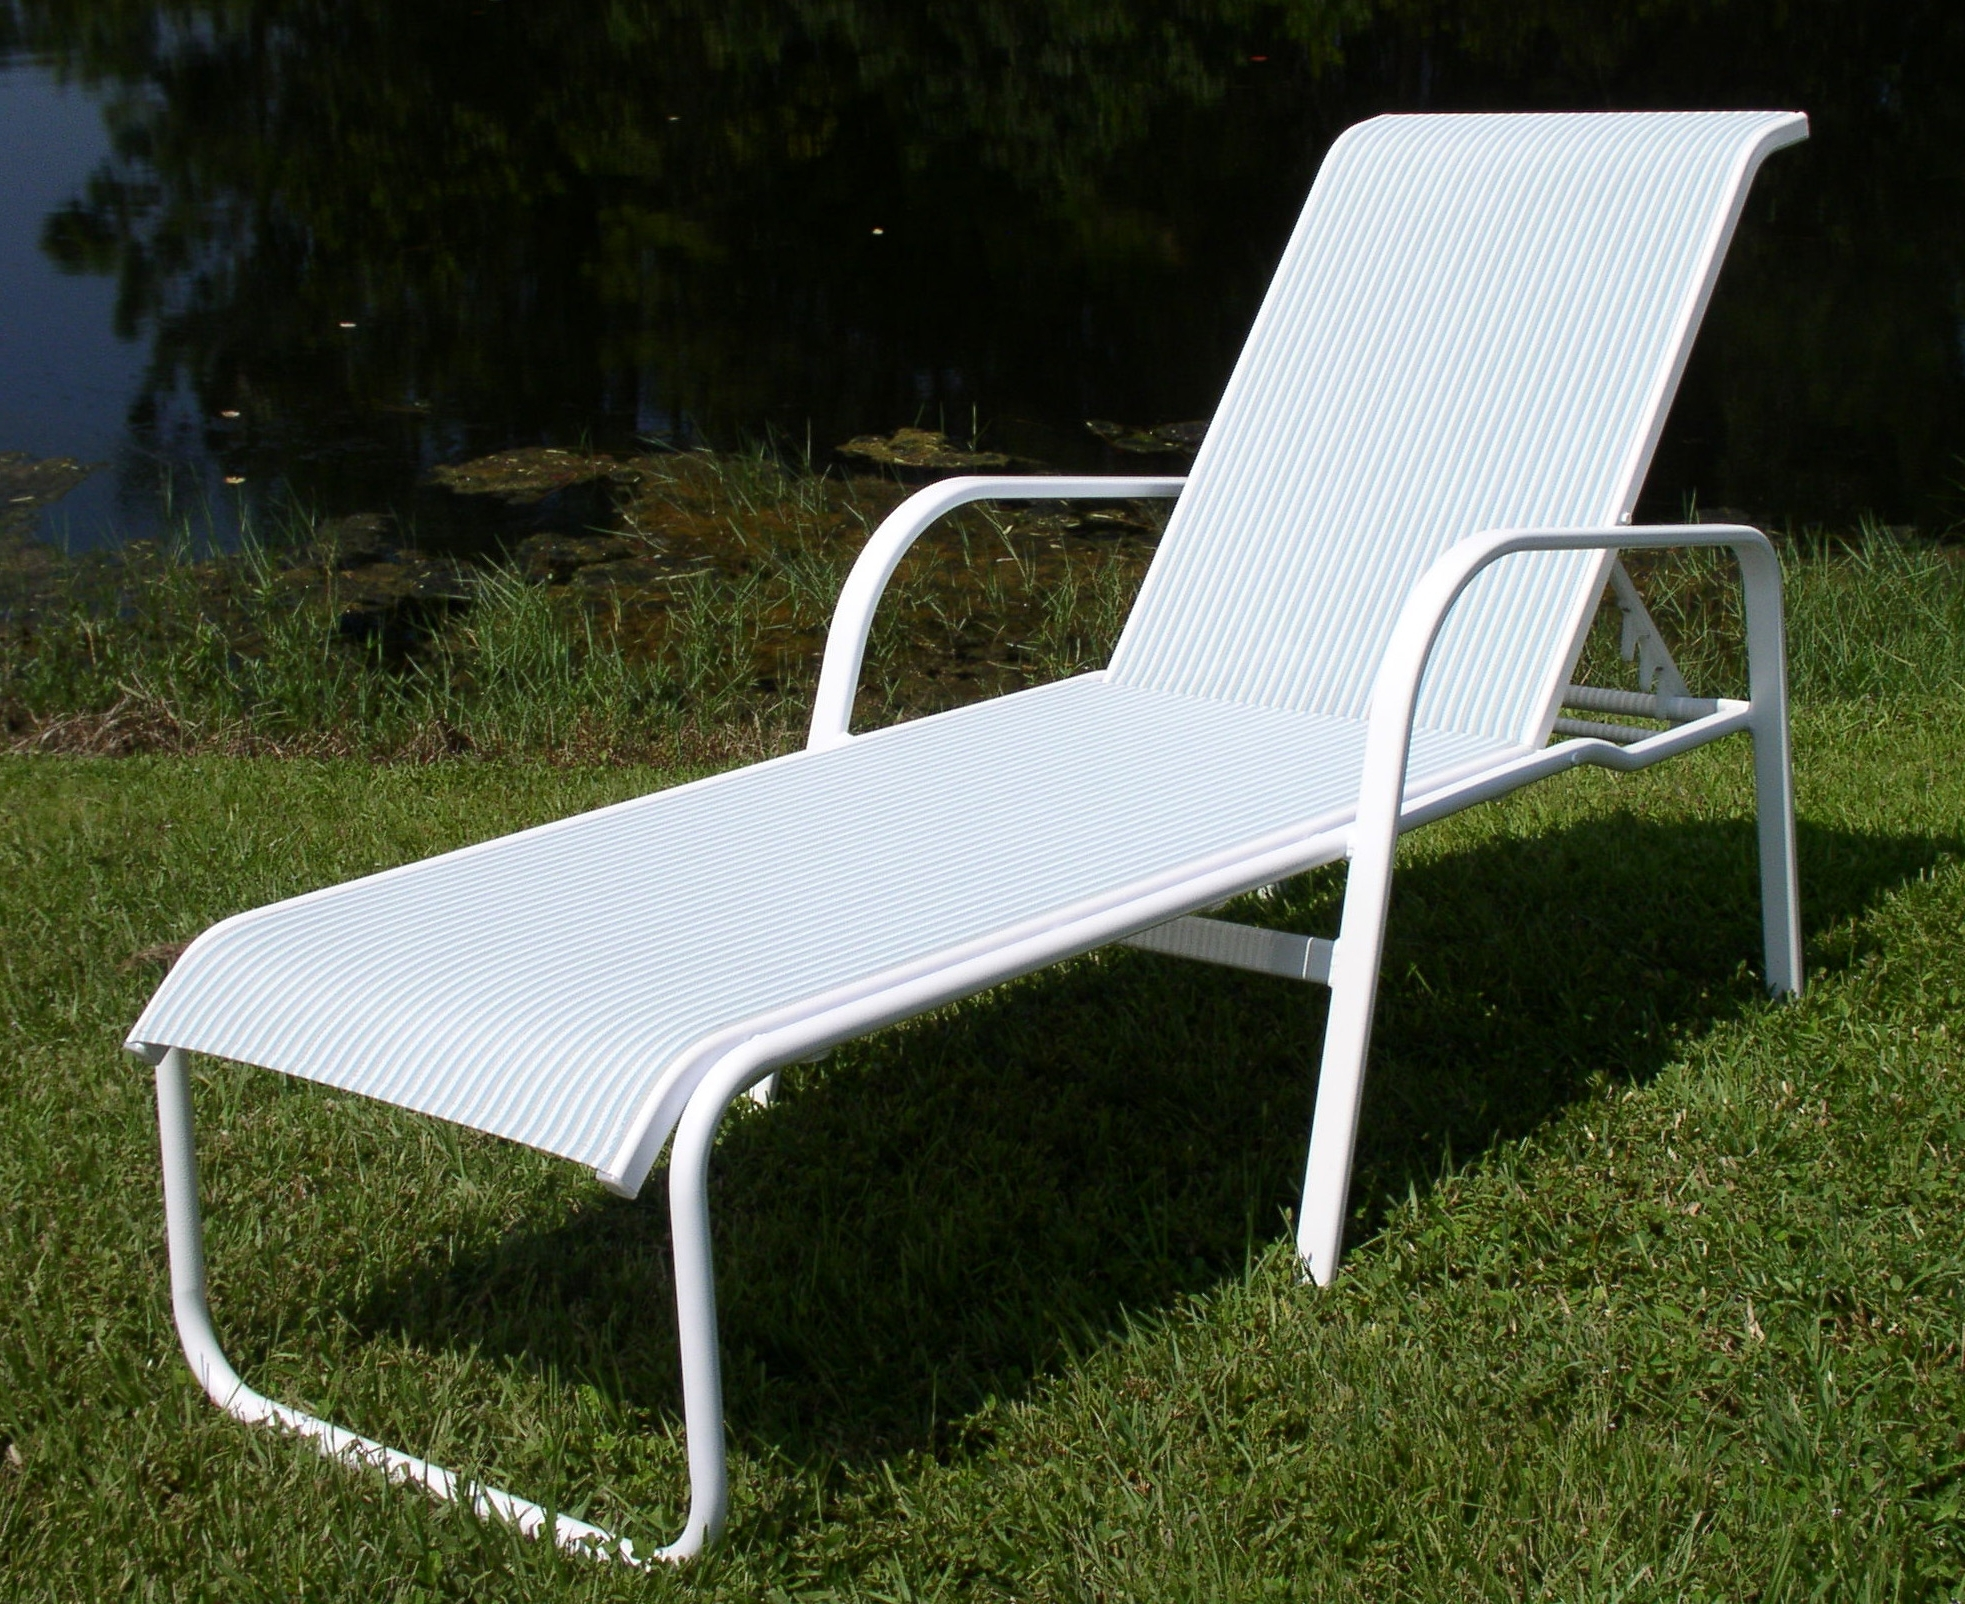 Sling Chaise Lounge Chair Attractive Pool Chairs 15 In Seat Ocean Throughout Well Known Chaise Lounge Sling Chairs (View 14 of 15)